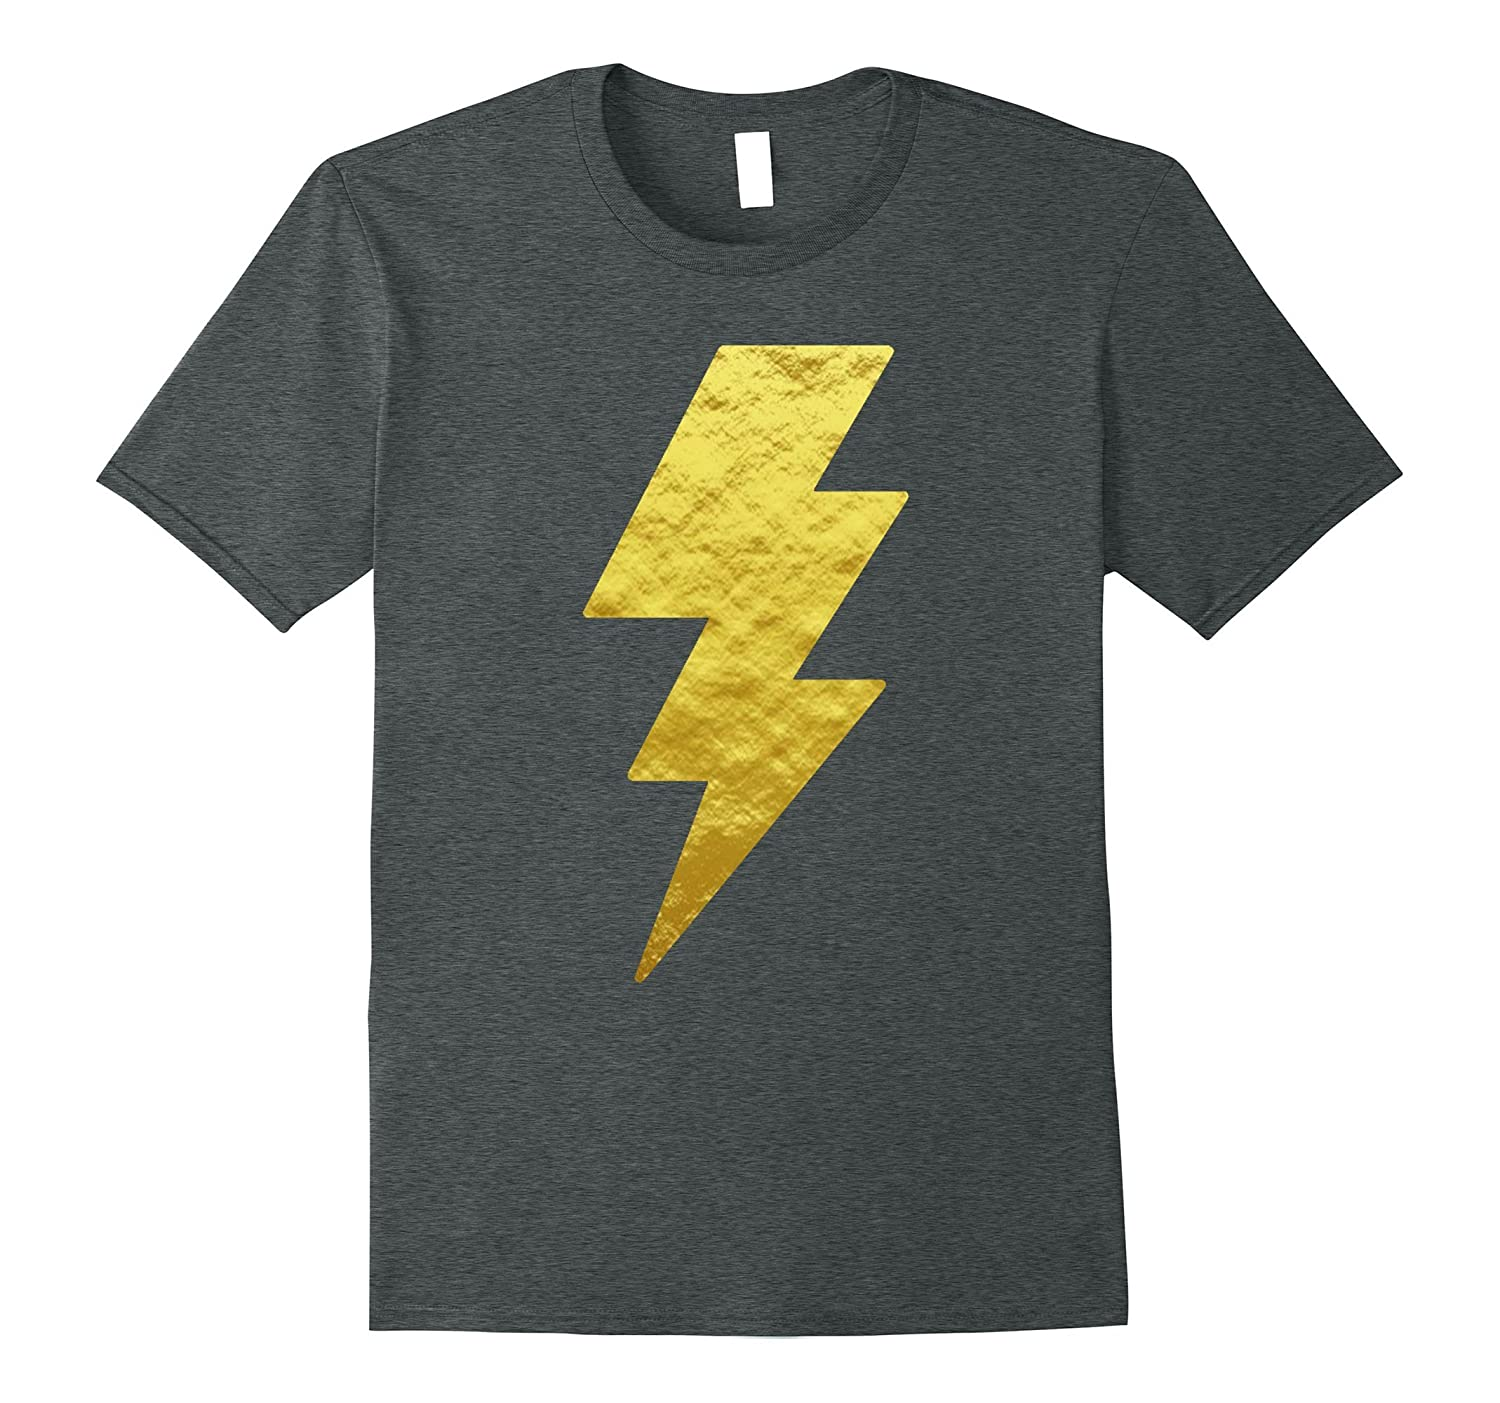 Lightning Bolt Tshirt Gold Unisex Graphic Printed Tees Tops Fl